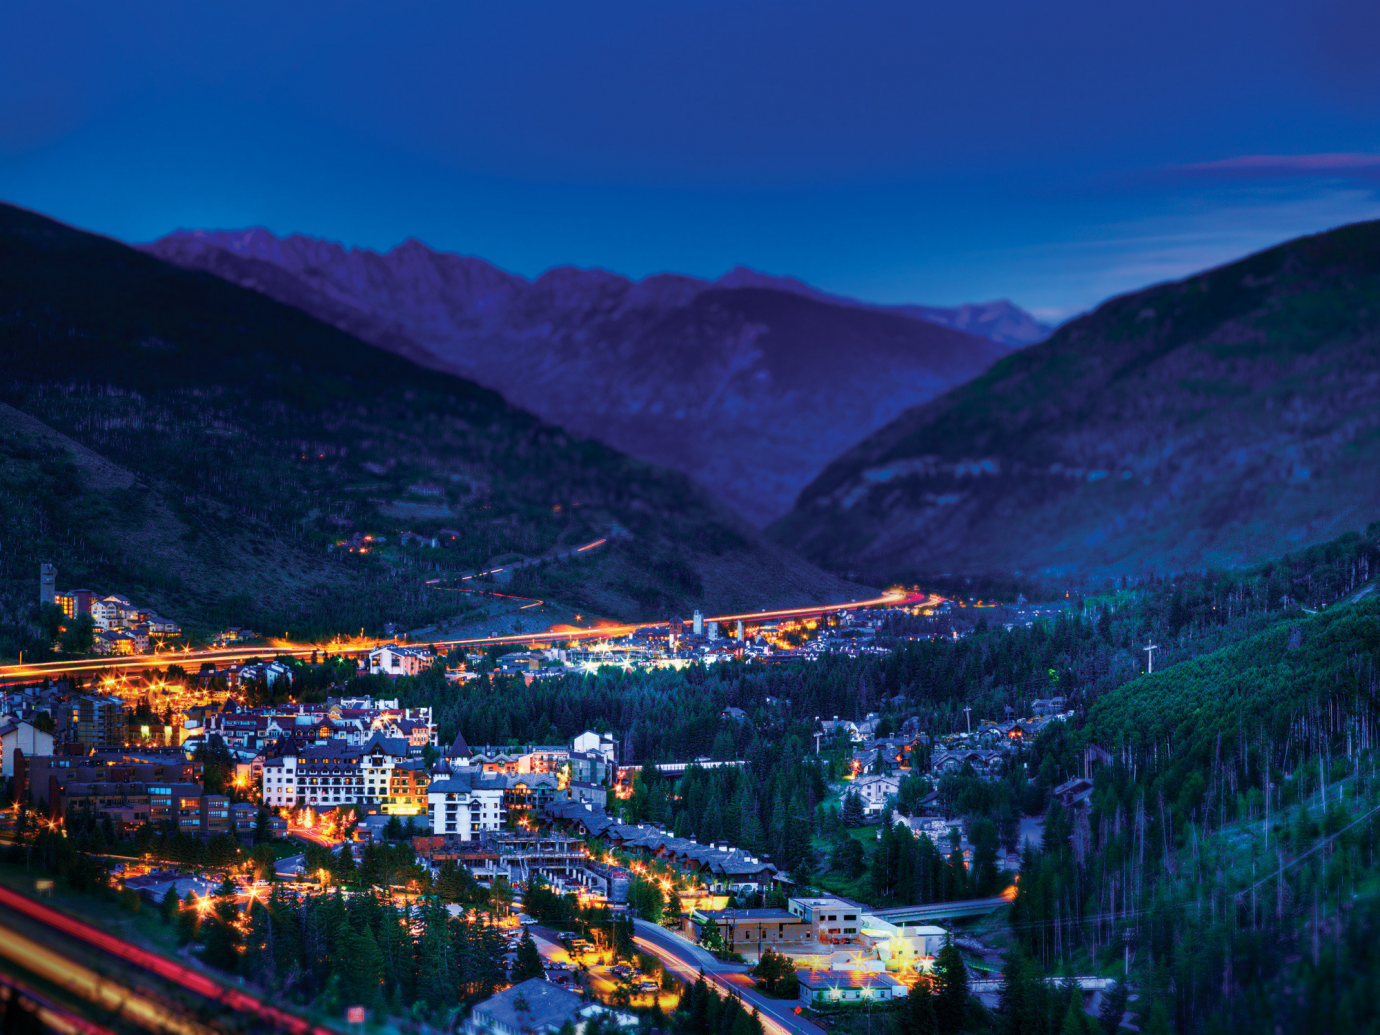 View of Vail Colorado at night